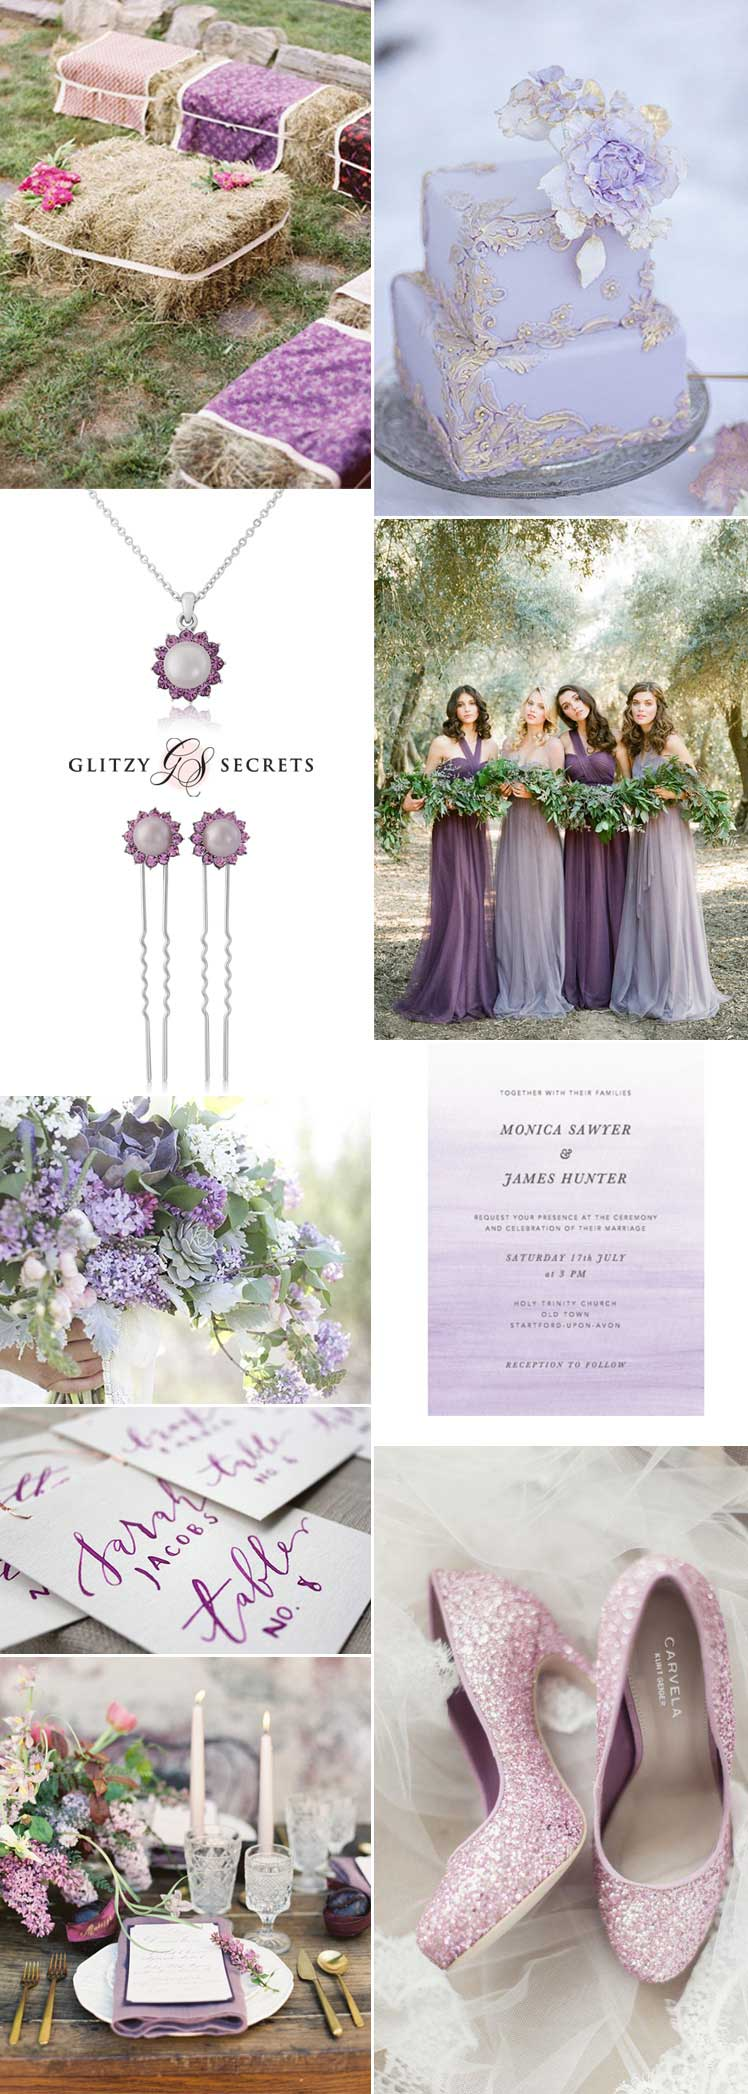 Lilac inspiration for your wedding day theme